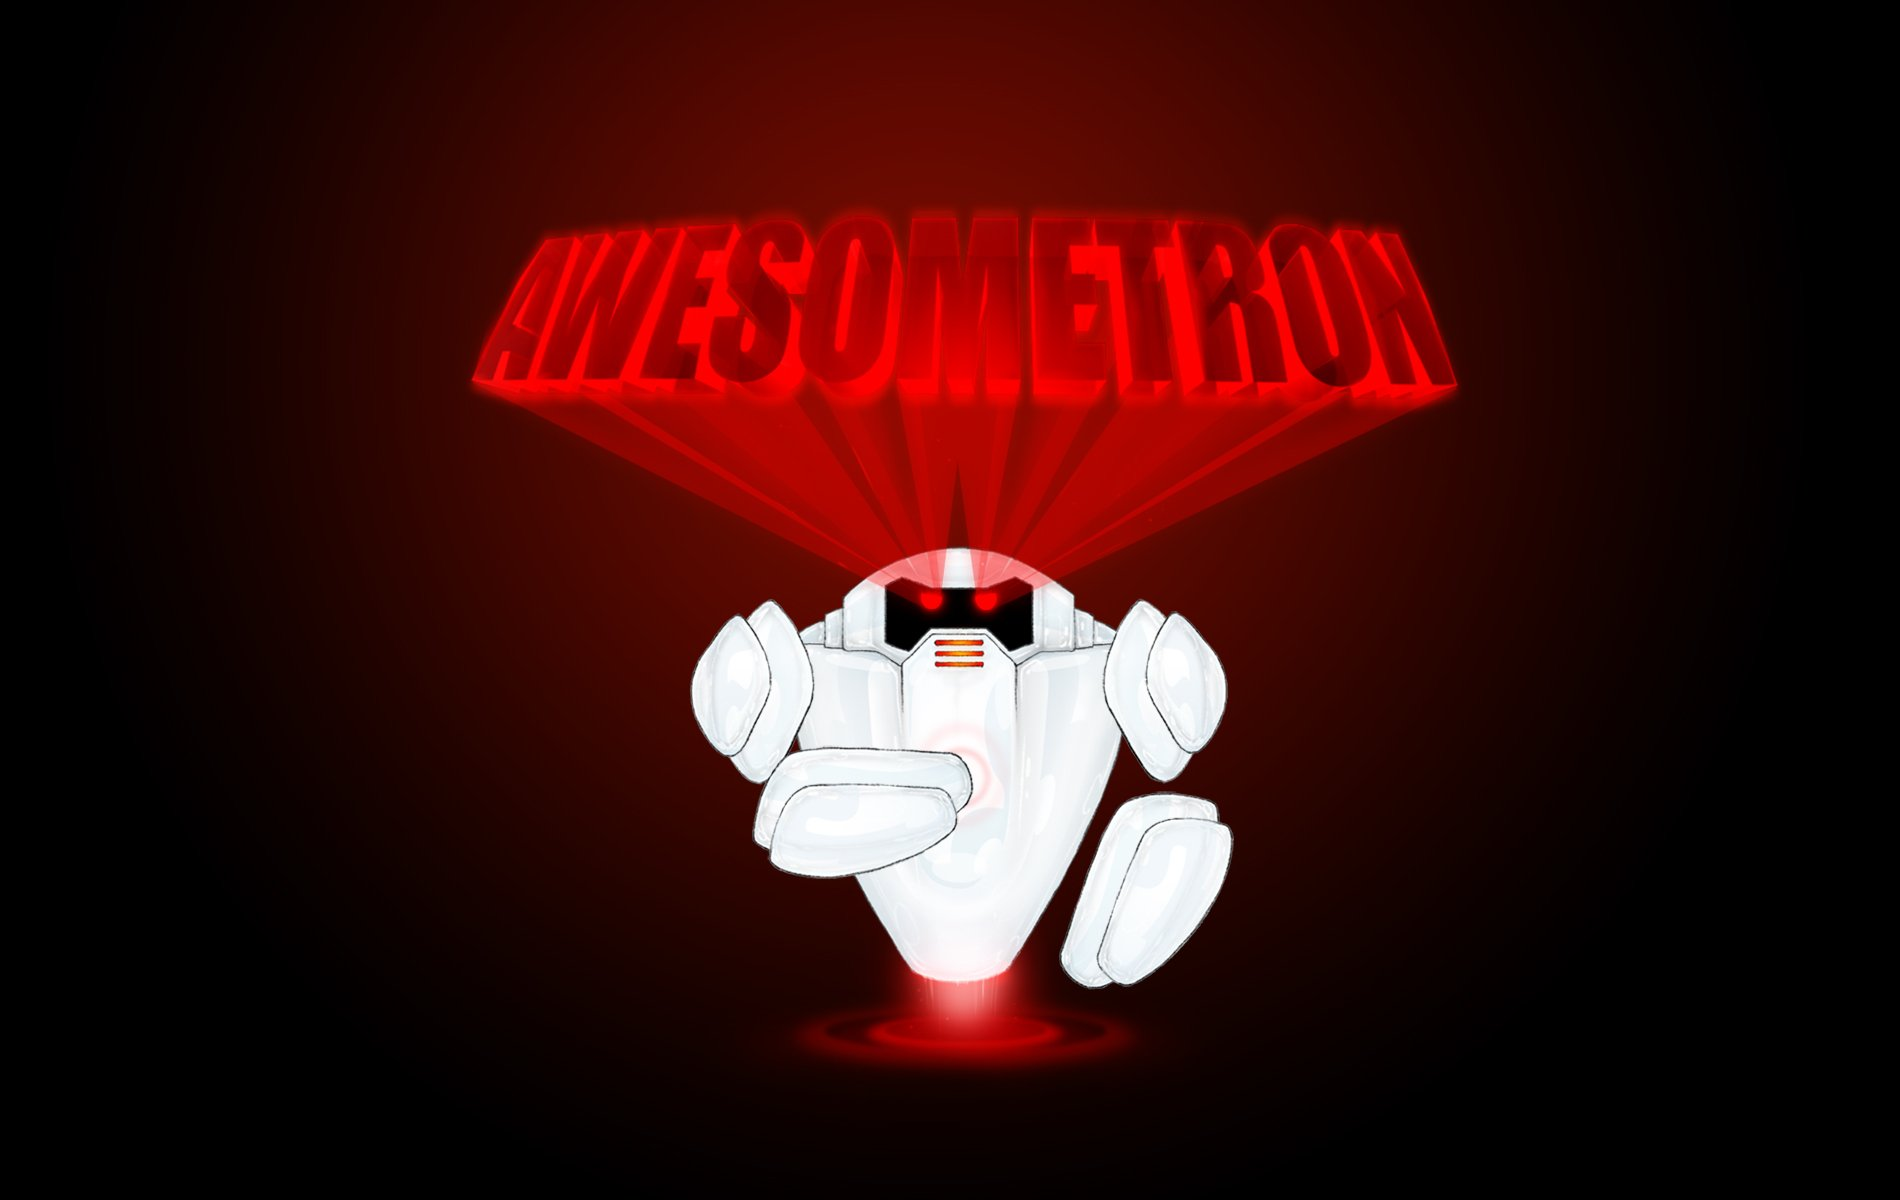 Wallpaper Awesometron Solo.jpg